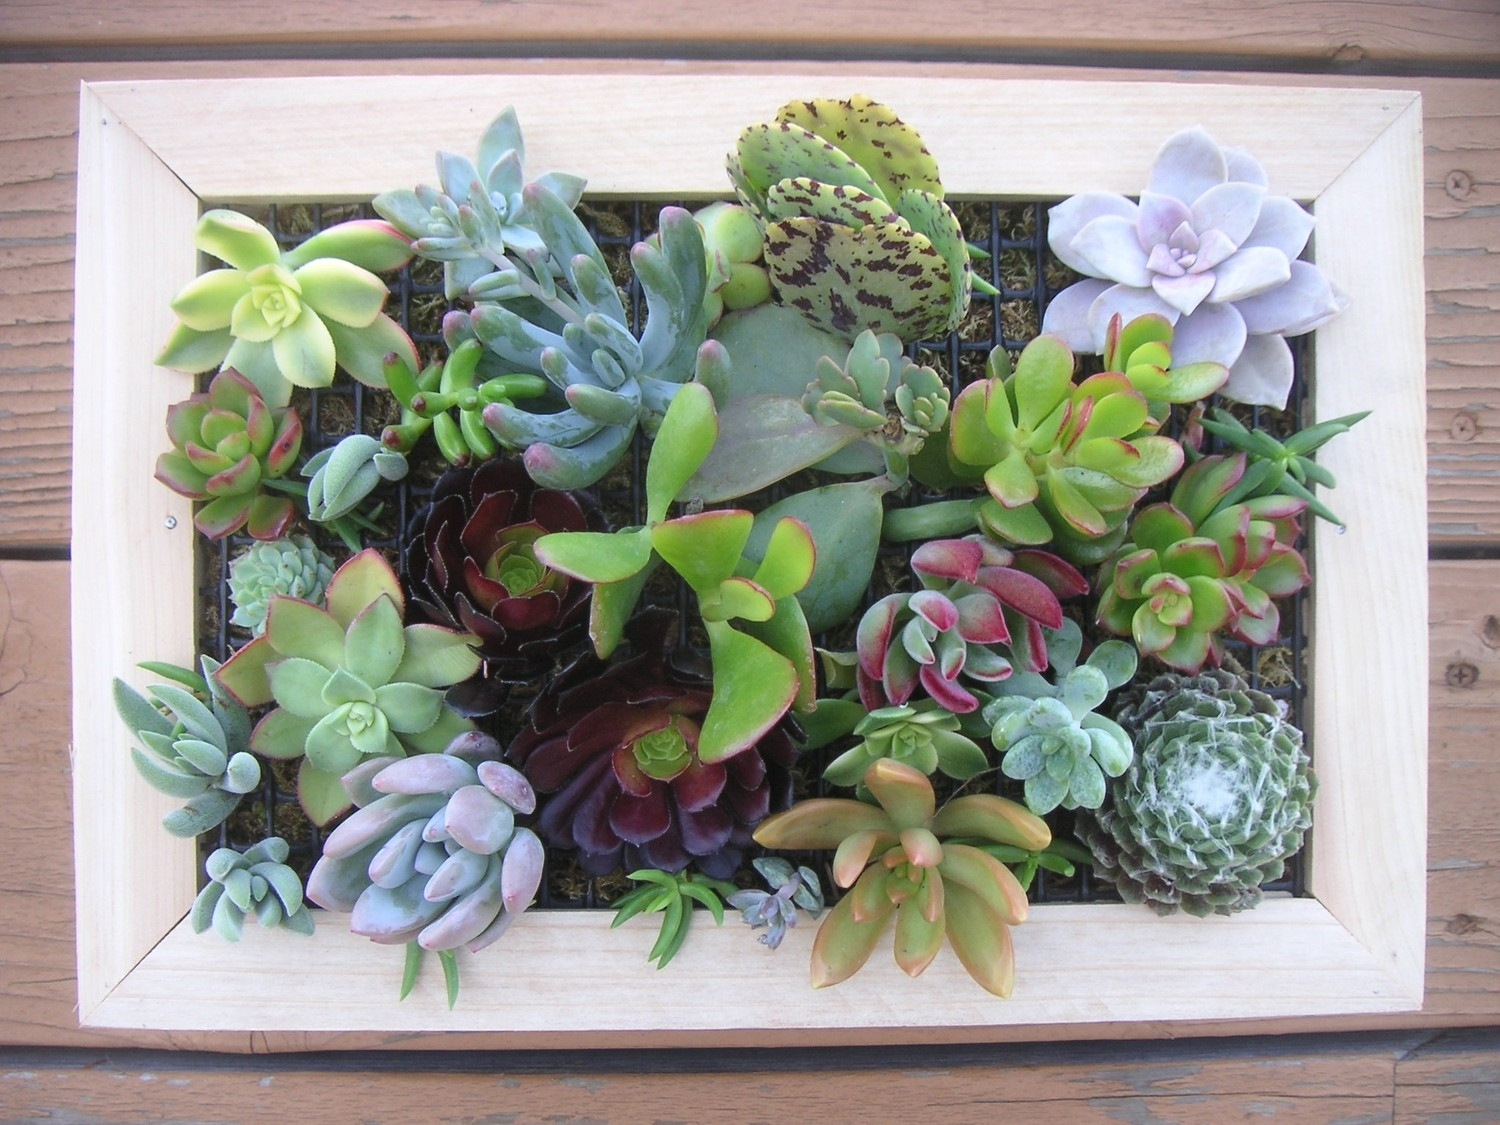 97 Living Wall Art Succulents An Old Picture Frame In Living Wall Within Most Current Succulent Wall Art (View 2 of 20)